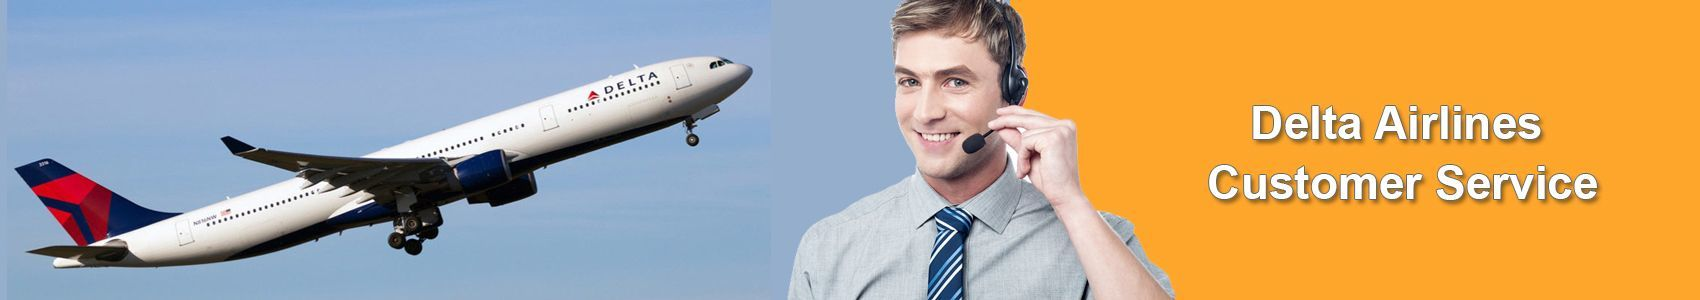 Delta Airlines Customer Service For Safe And Secure Travelling